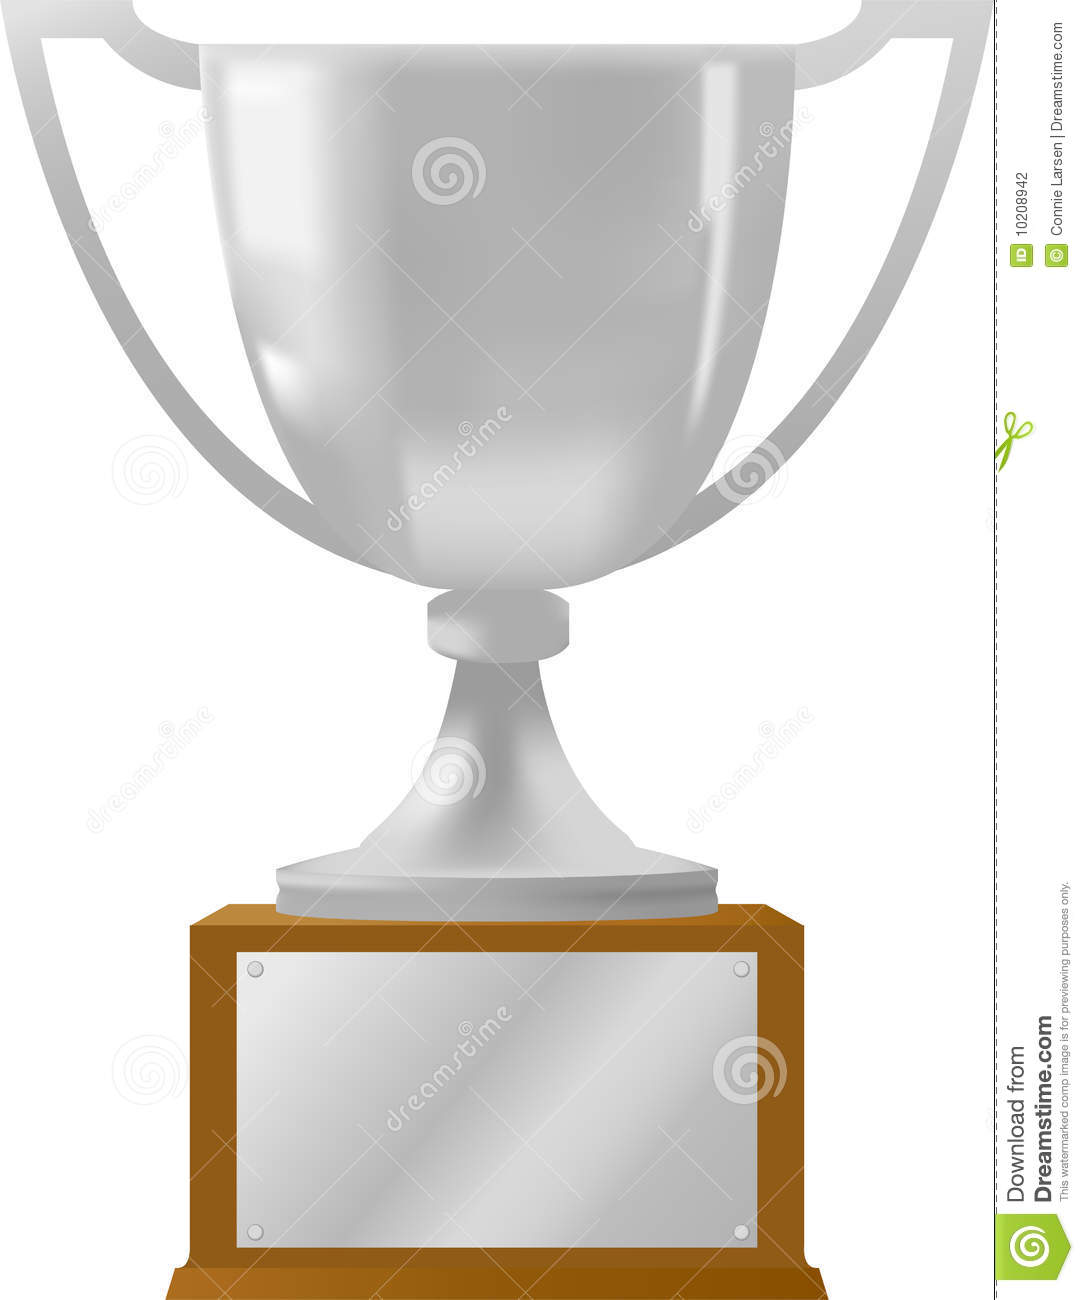 Silver Award Trophy Ai Stock Vector Illustration Of Metal